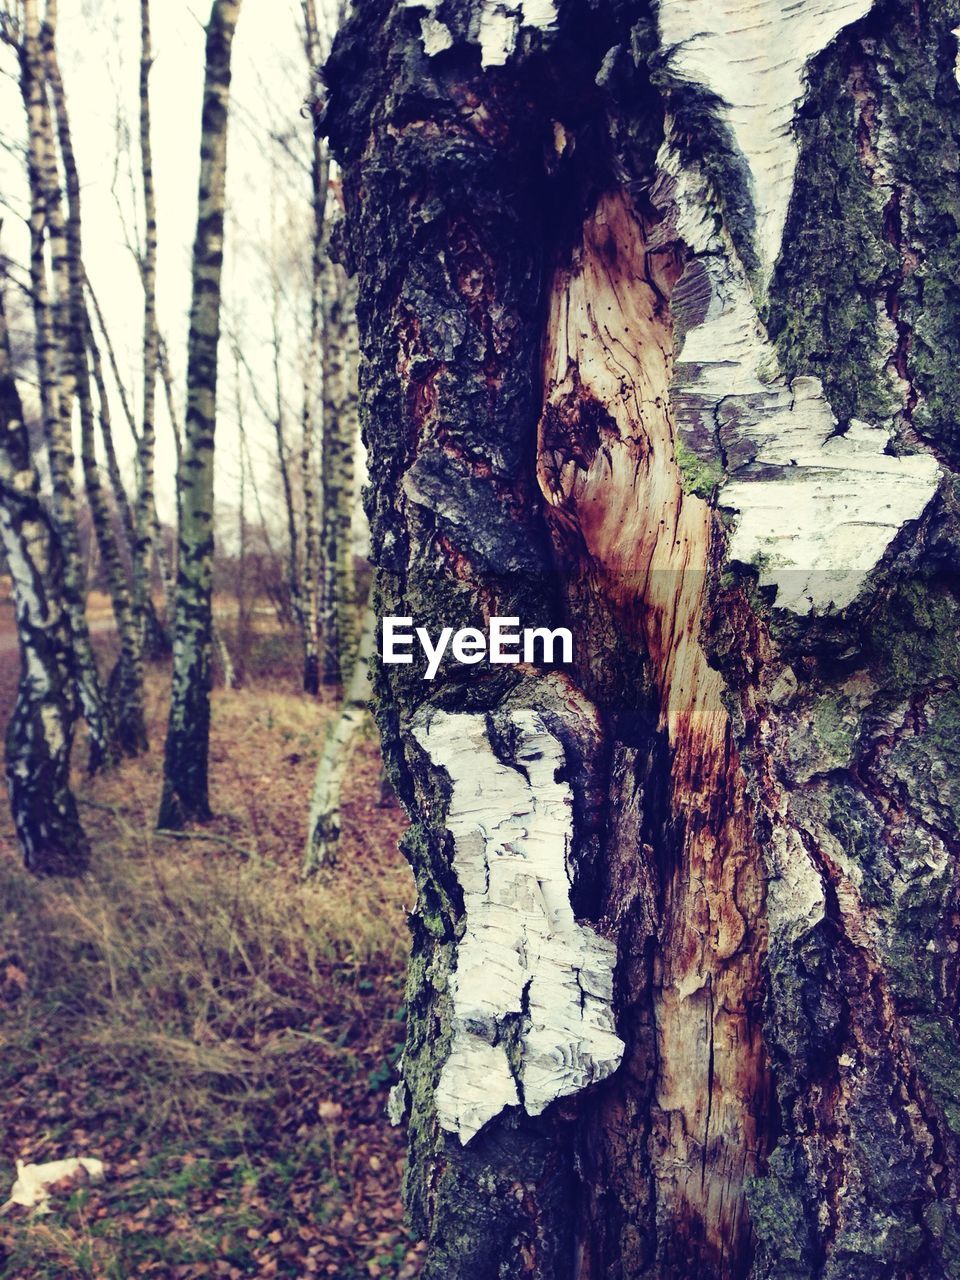 tree trunk, tree, bark, nature, textured, no people, forest, day, wood - material, outdoors, close-up, growth, tree stump, marking, dead tree, fungus, beauty in nature